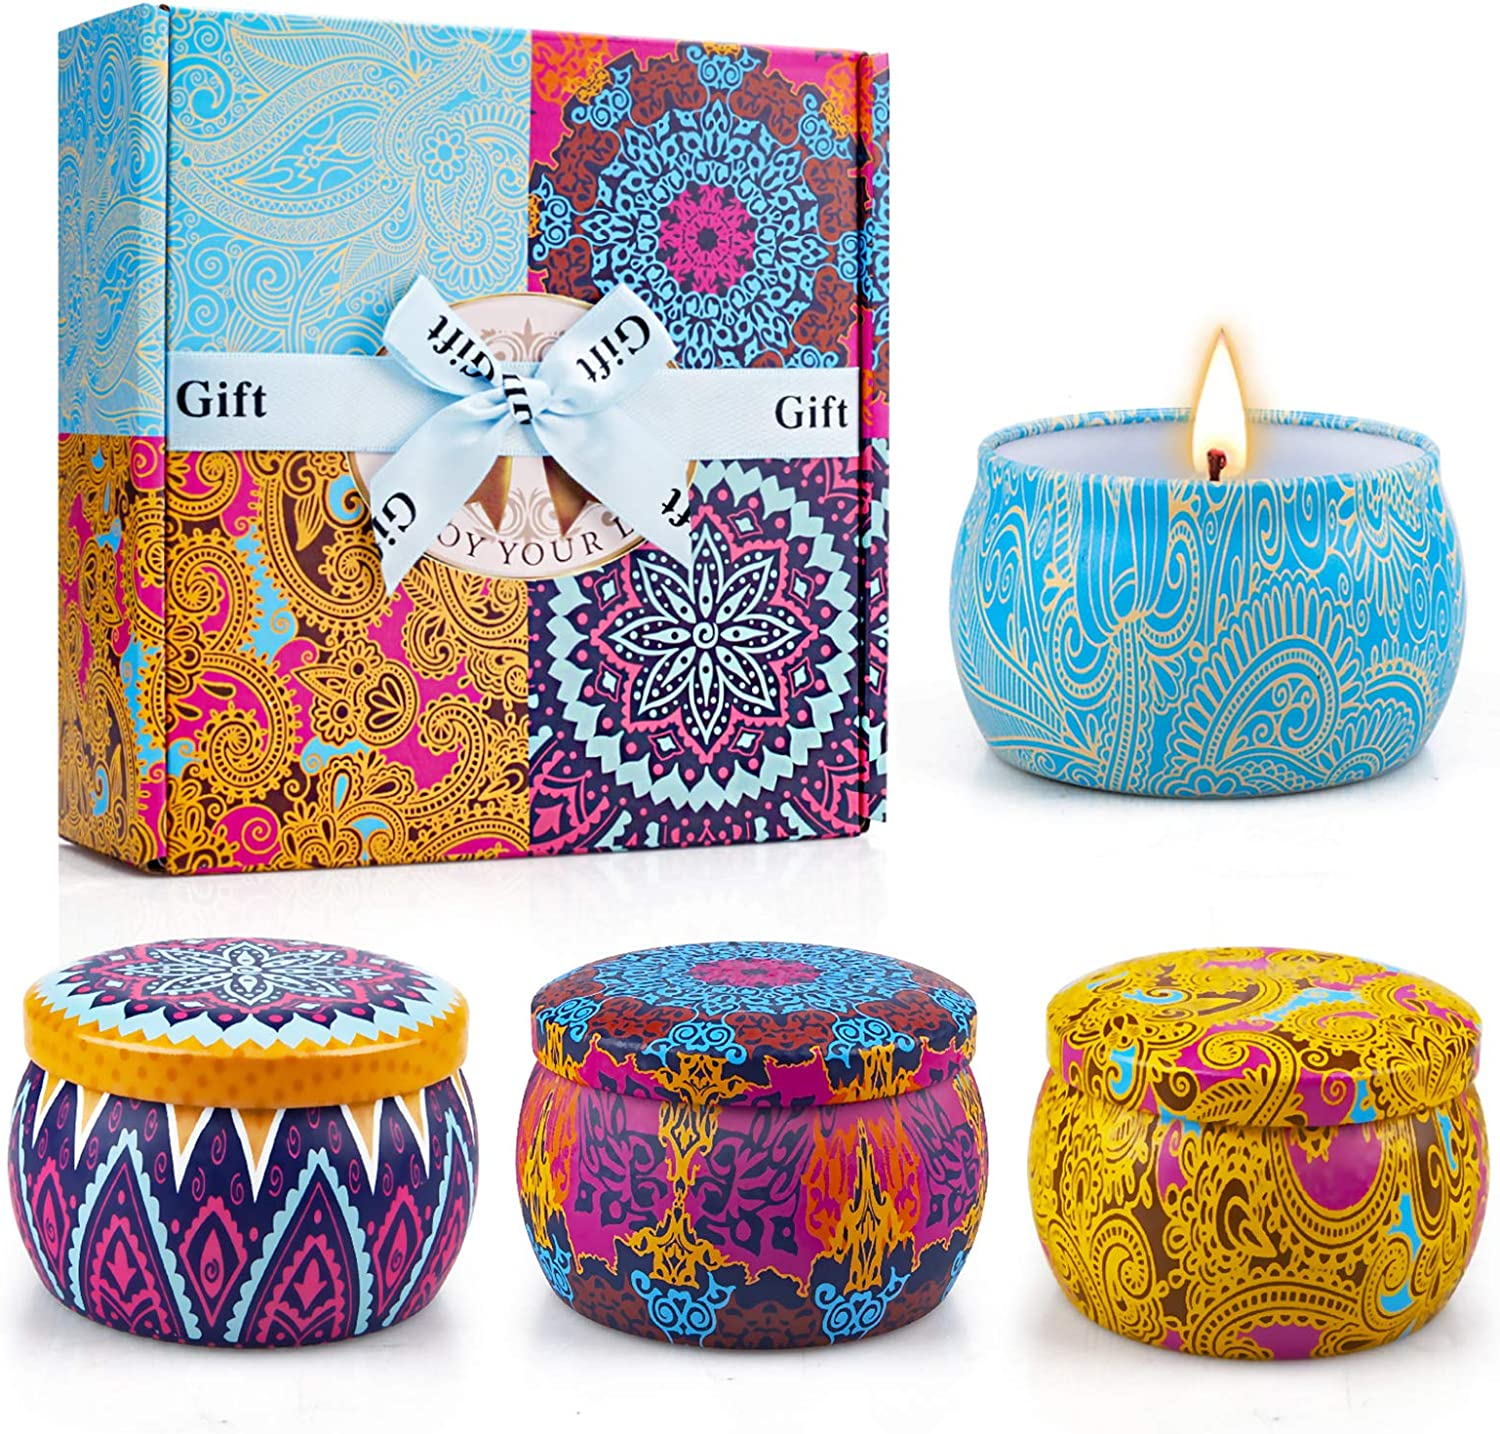 Cute candles with a scent